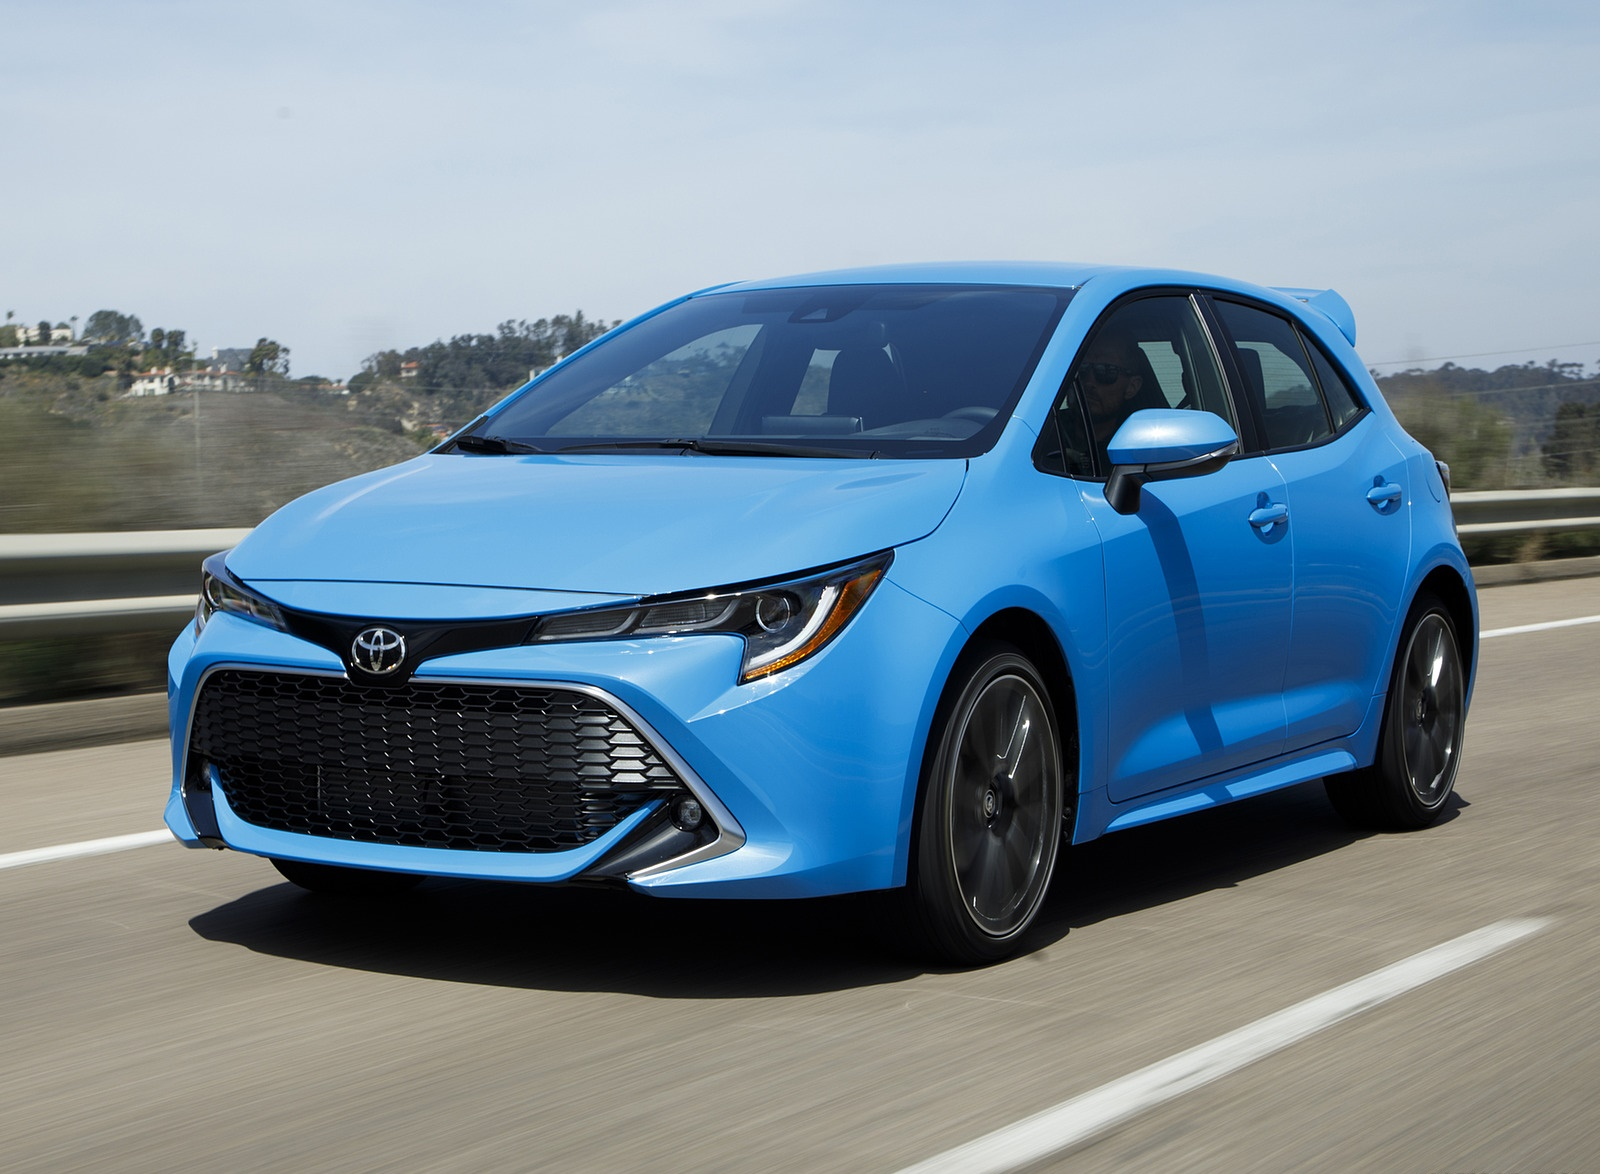 2019 Toyota Corolla Hatchback Front Three-Quarter Wallpapers #22 of 75